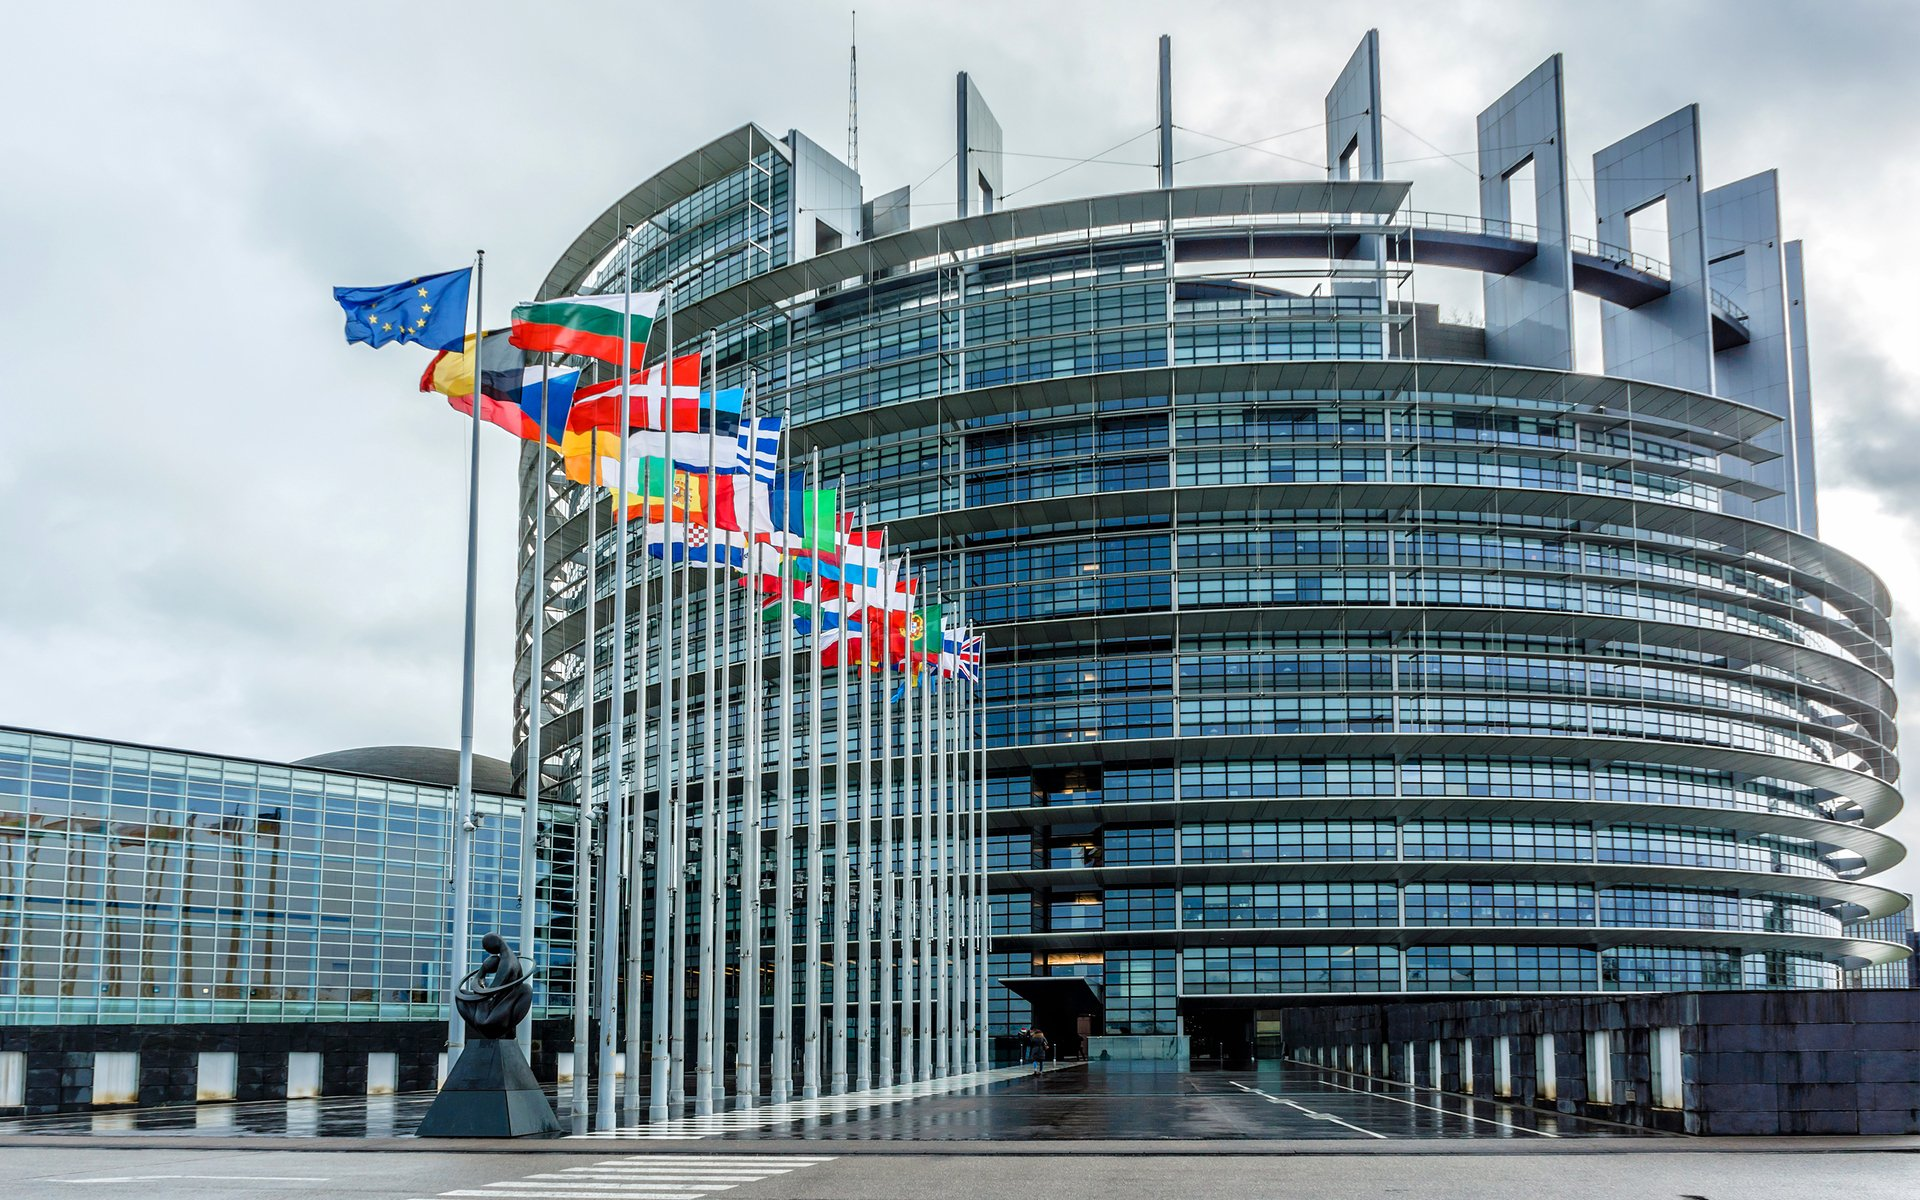 Bitcoin Market Cap >> New Report Warns EU Policymakers Not to Ban Bitcoin - Bitcoinist.com